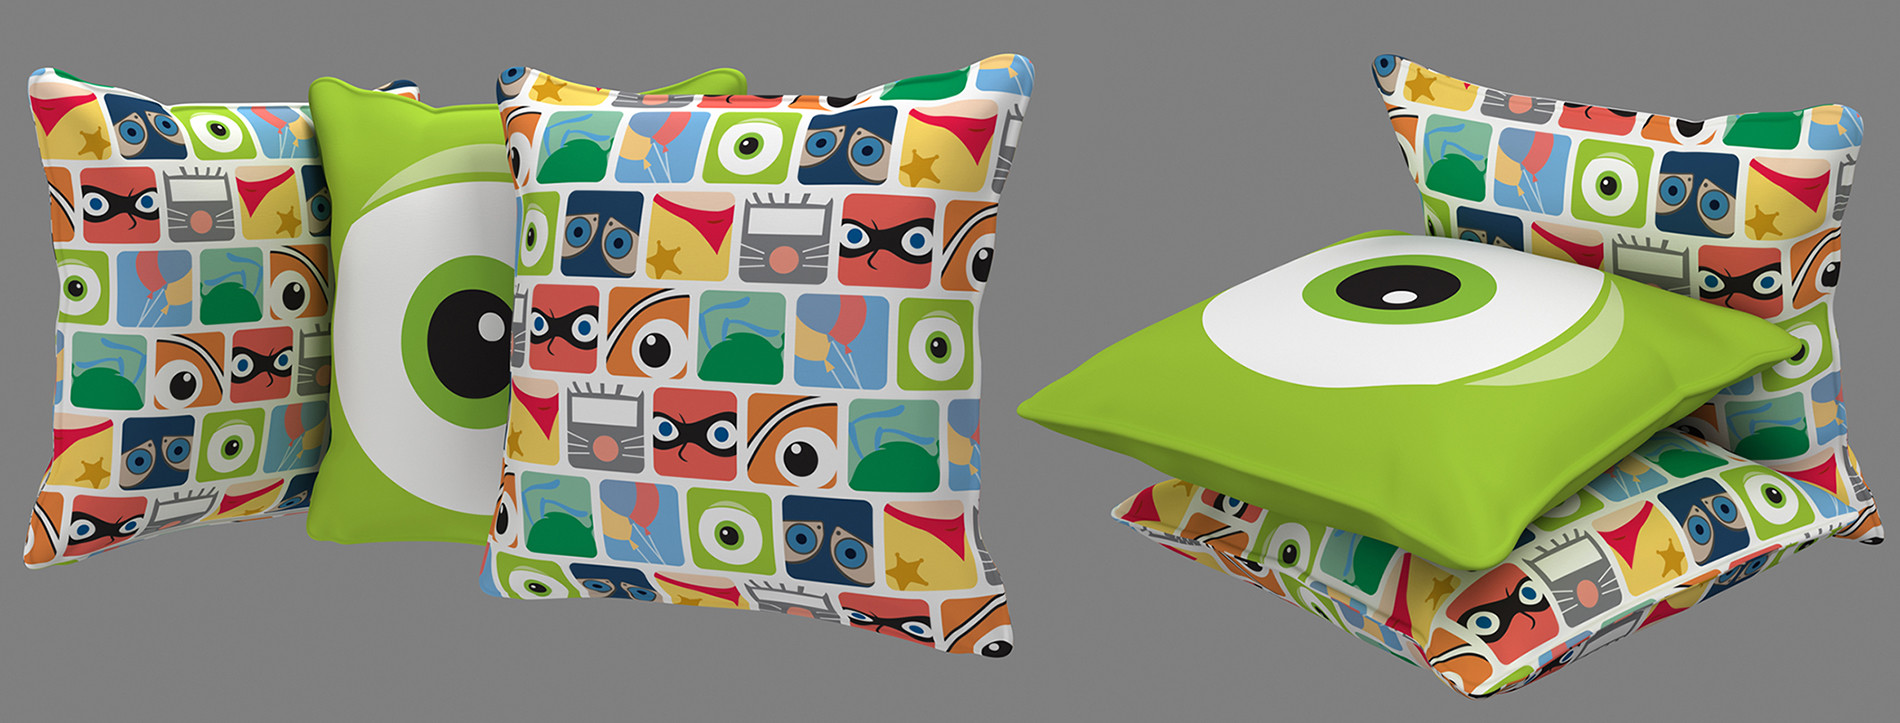 Roger borelli pixar pillows v01